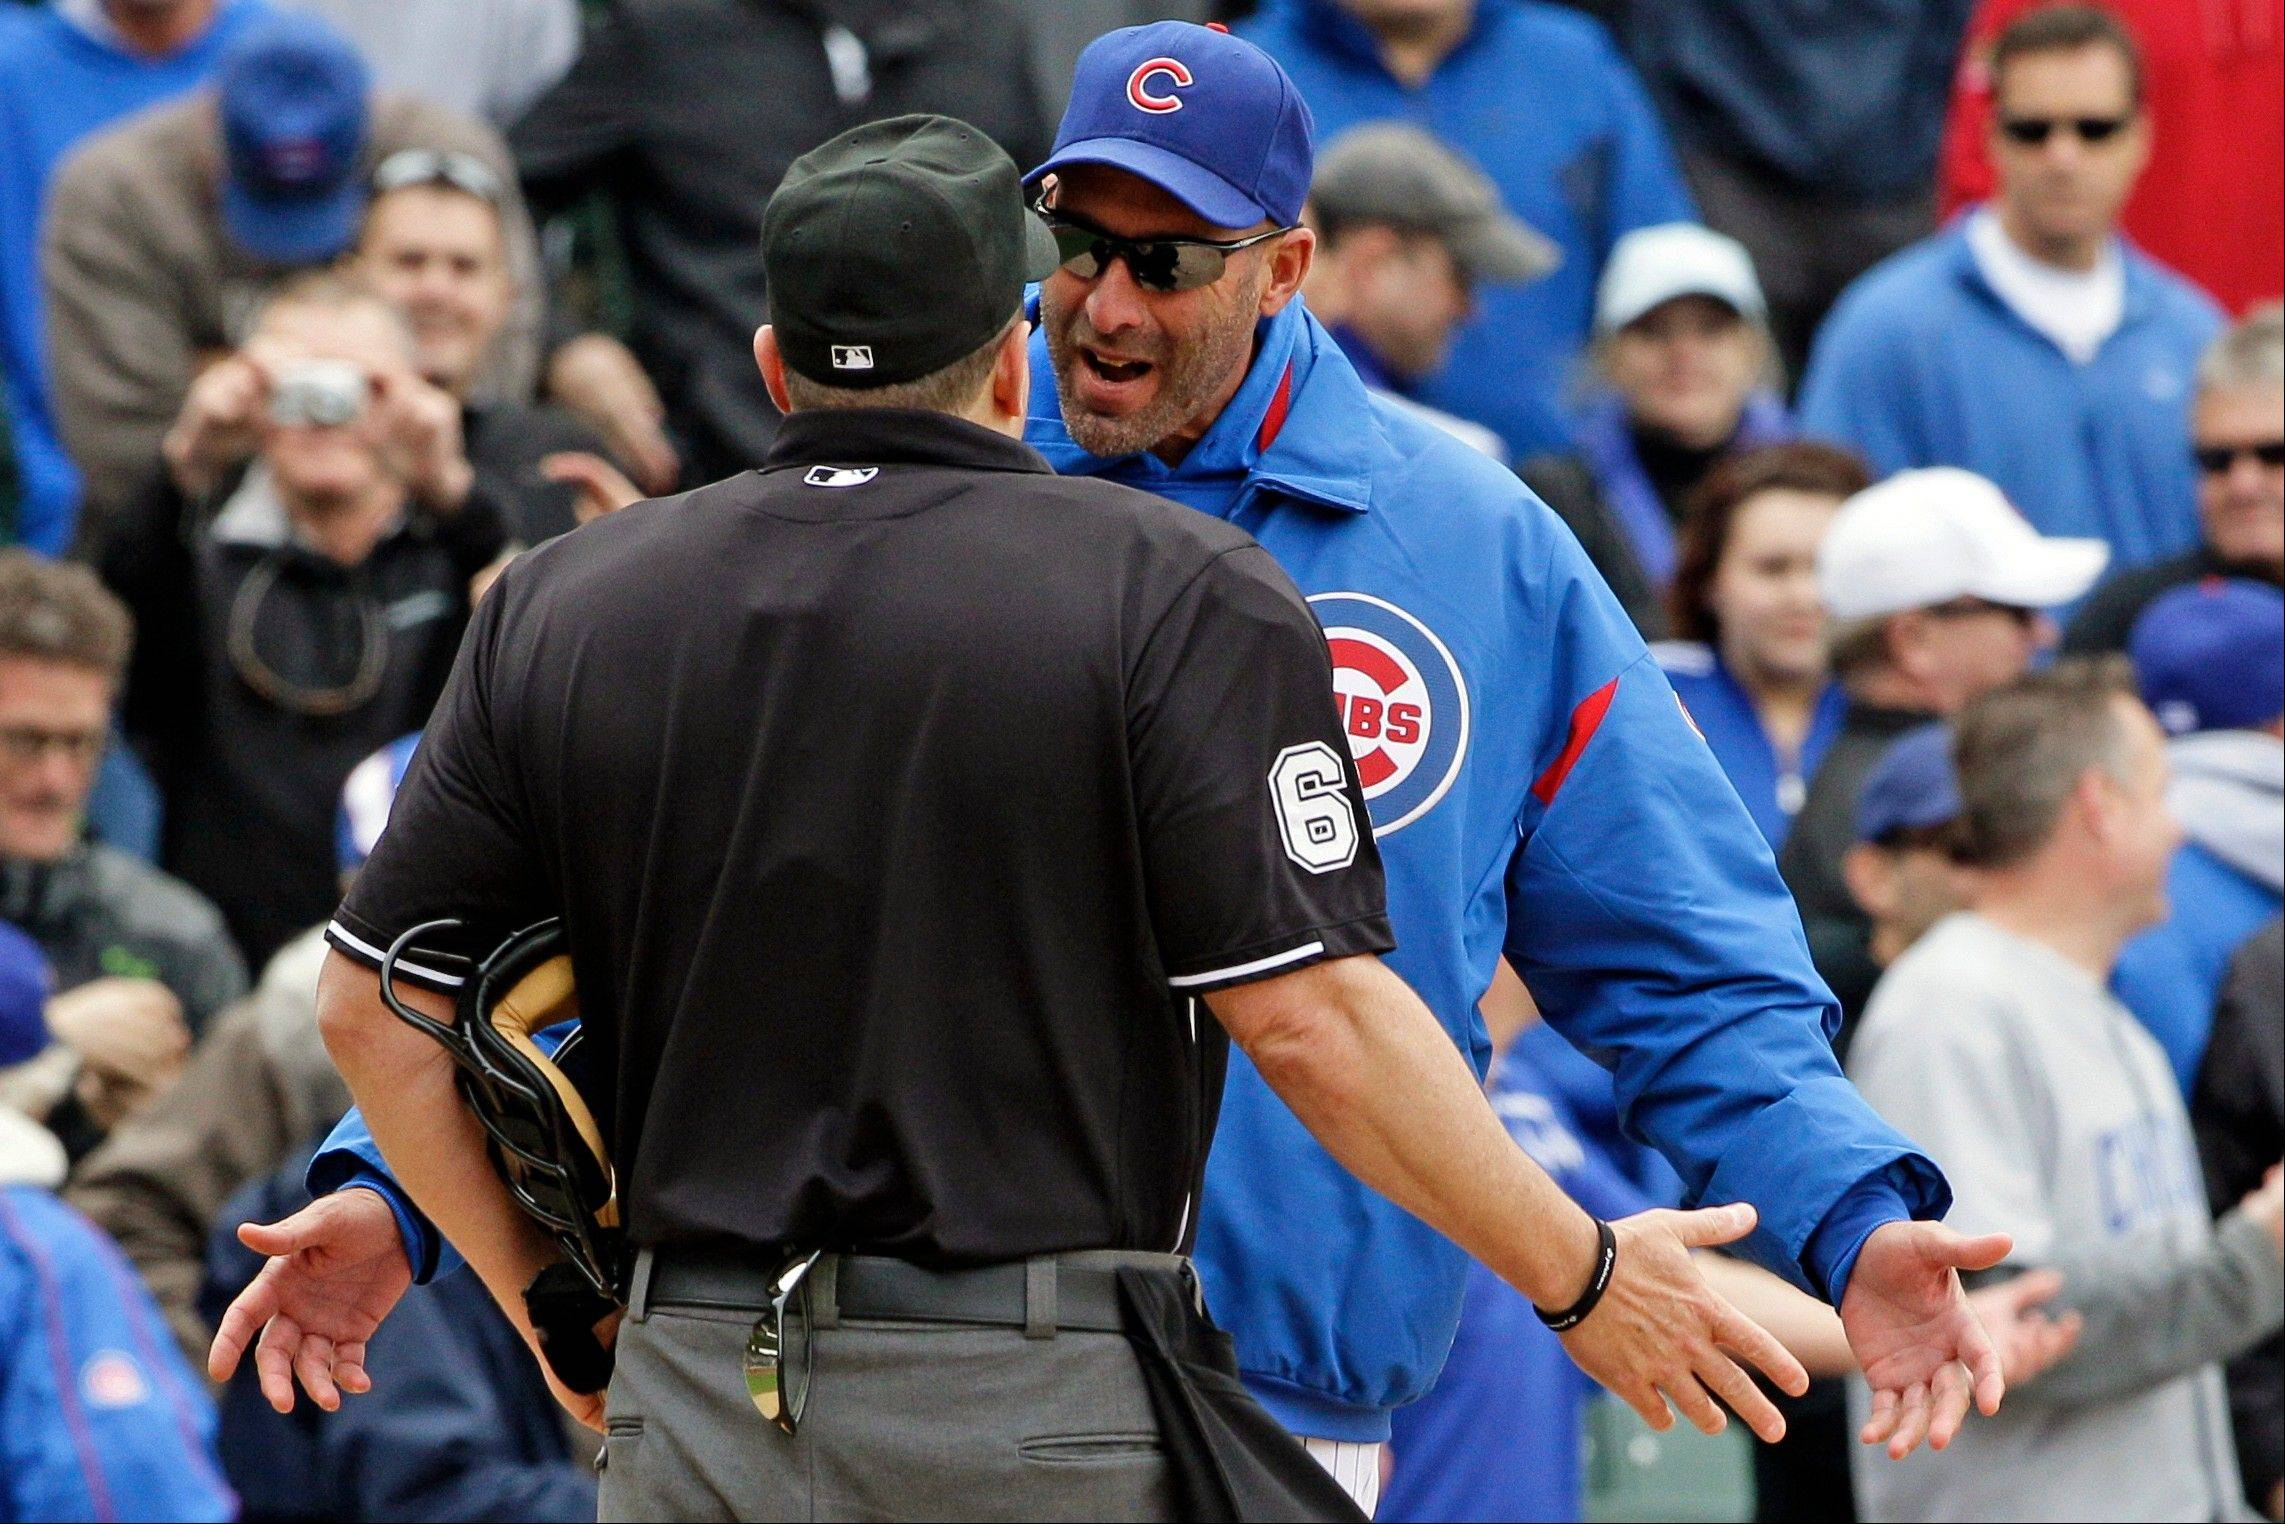 Chicago Cubs manager Dale Sveum, right, argues with home plate umpire Marty Foster during the ninth inning of a baseball game against the Los Angeles Dodgers in Chicago, Friday, May 4, 2012. The Cubs won 5-4.